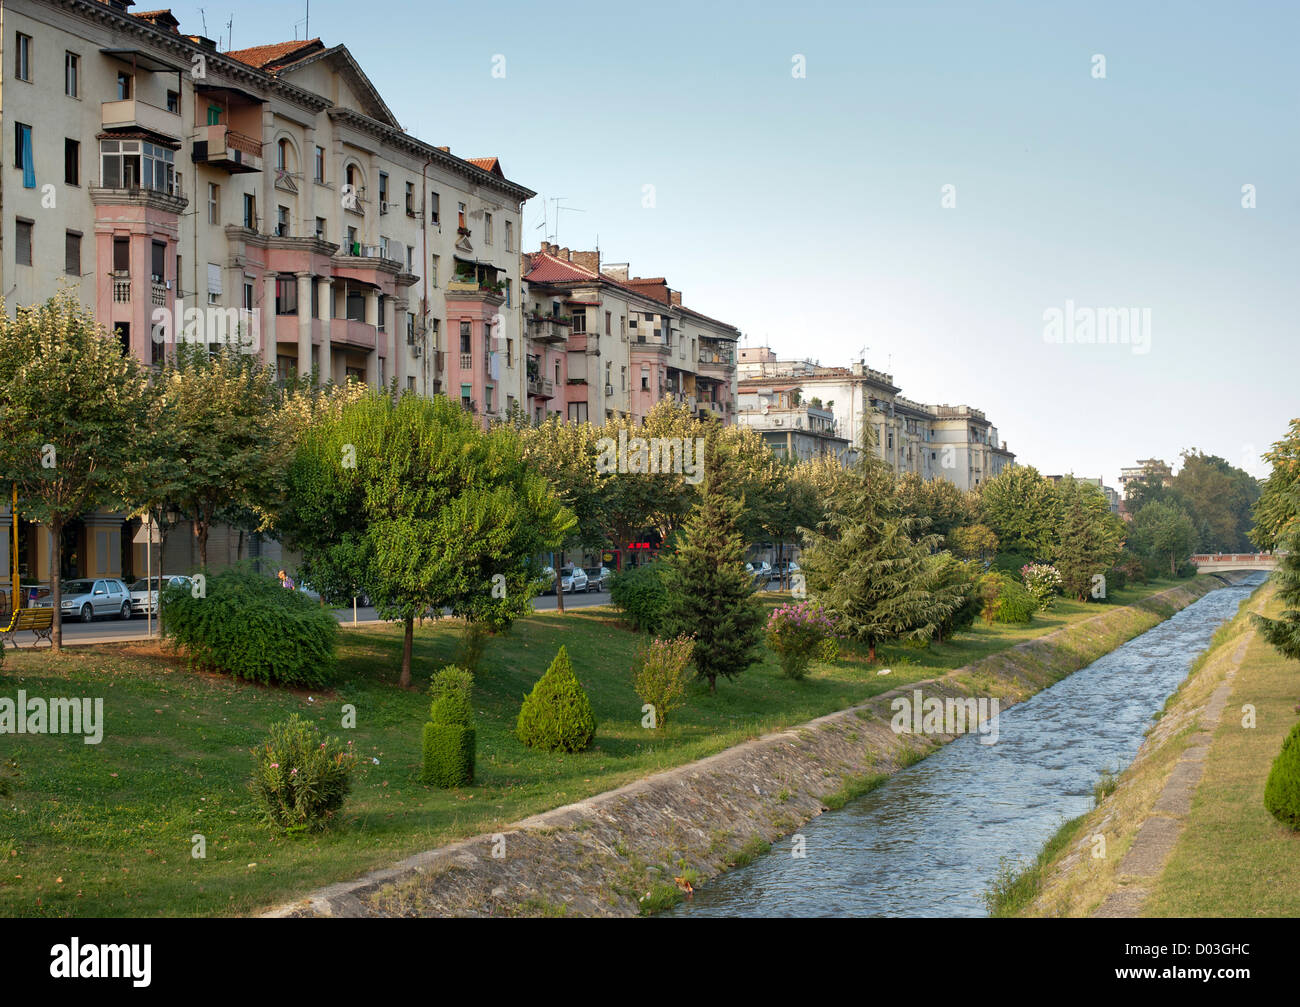 The Lana 'river' in Tirana, the capital of Albania. Stock Photo